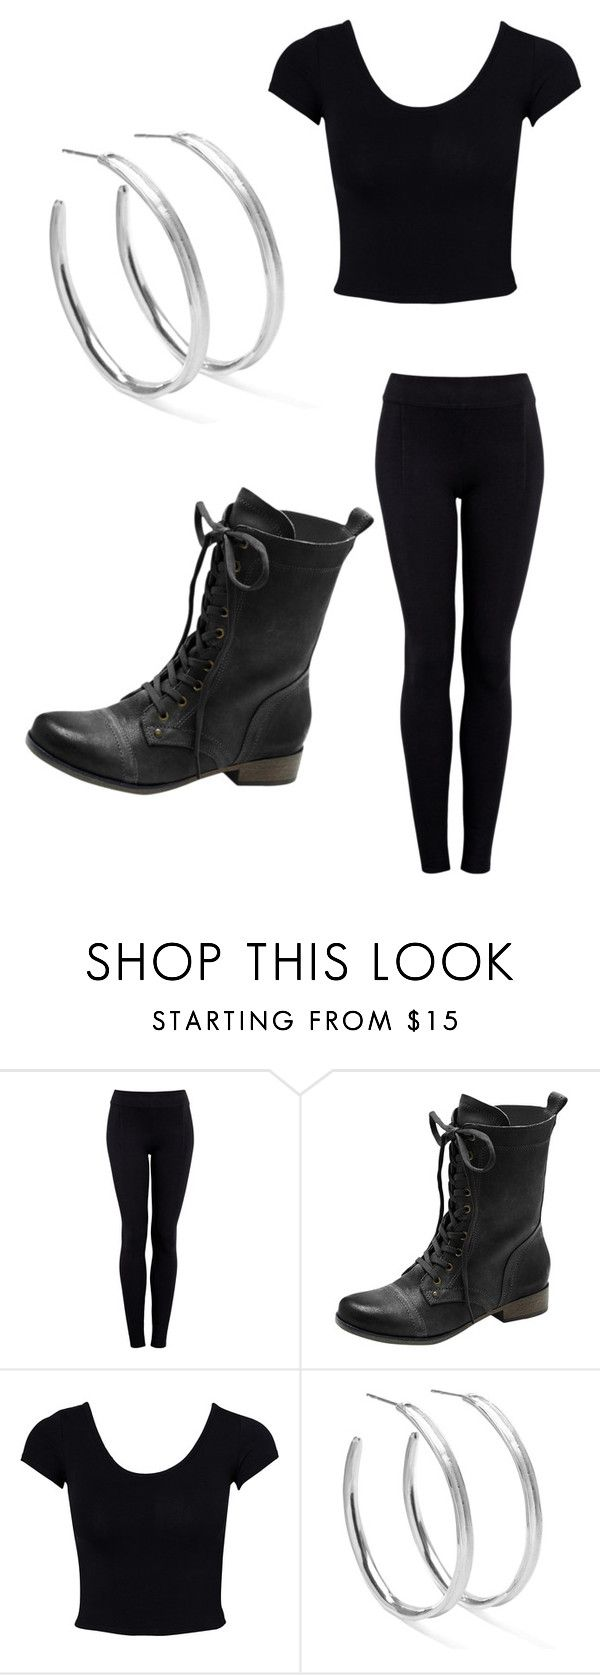 """""""Going to school"""" by bosschick101 ❤ liked on Polyvore featuring Helmut by Helmut Lang, Vince Camuto, Estradeur and Ippolita"""